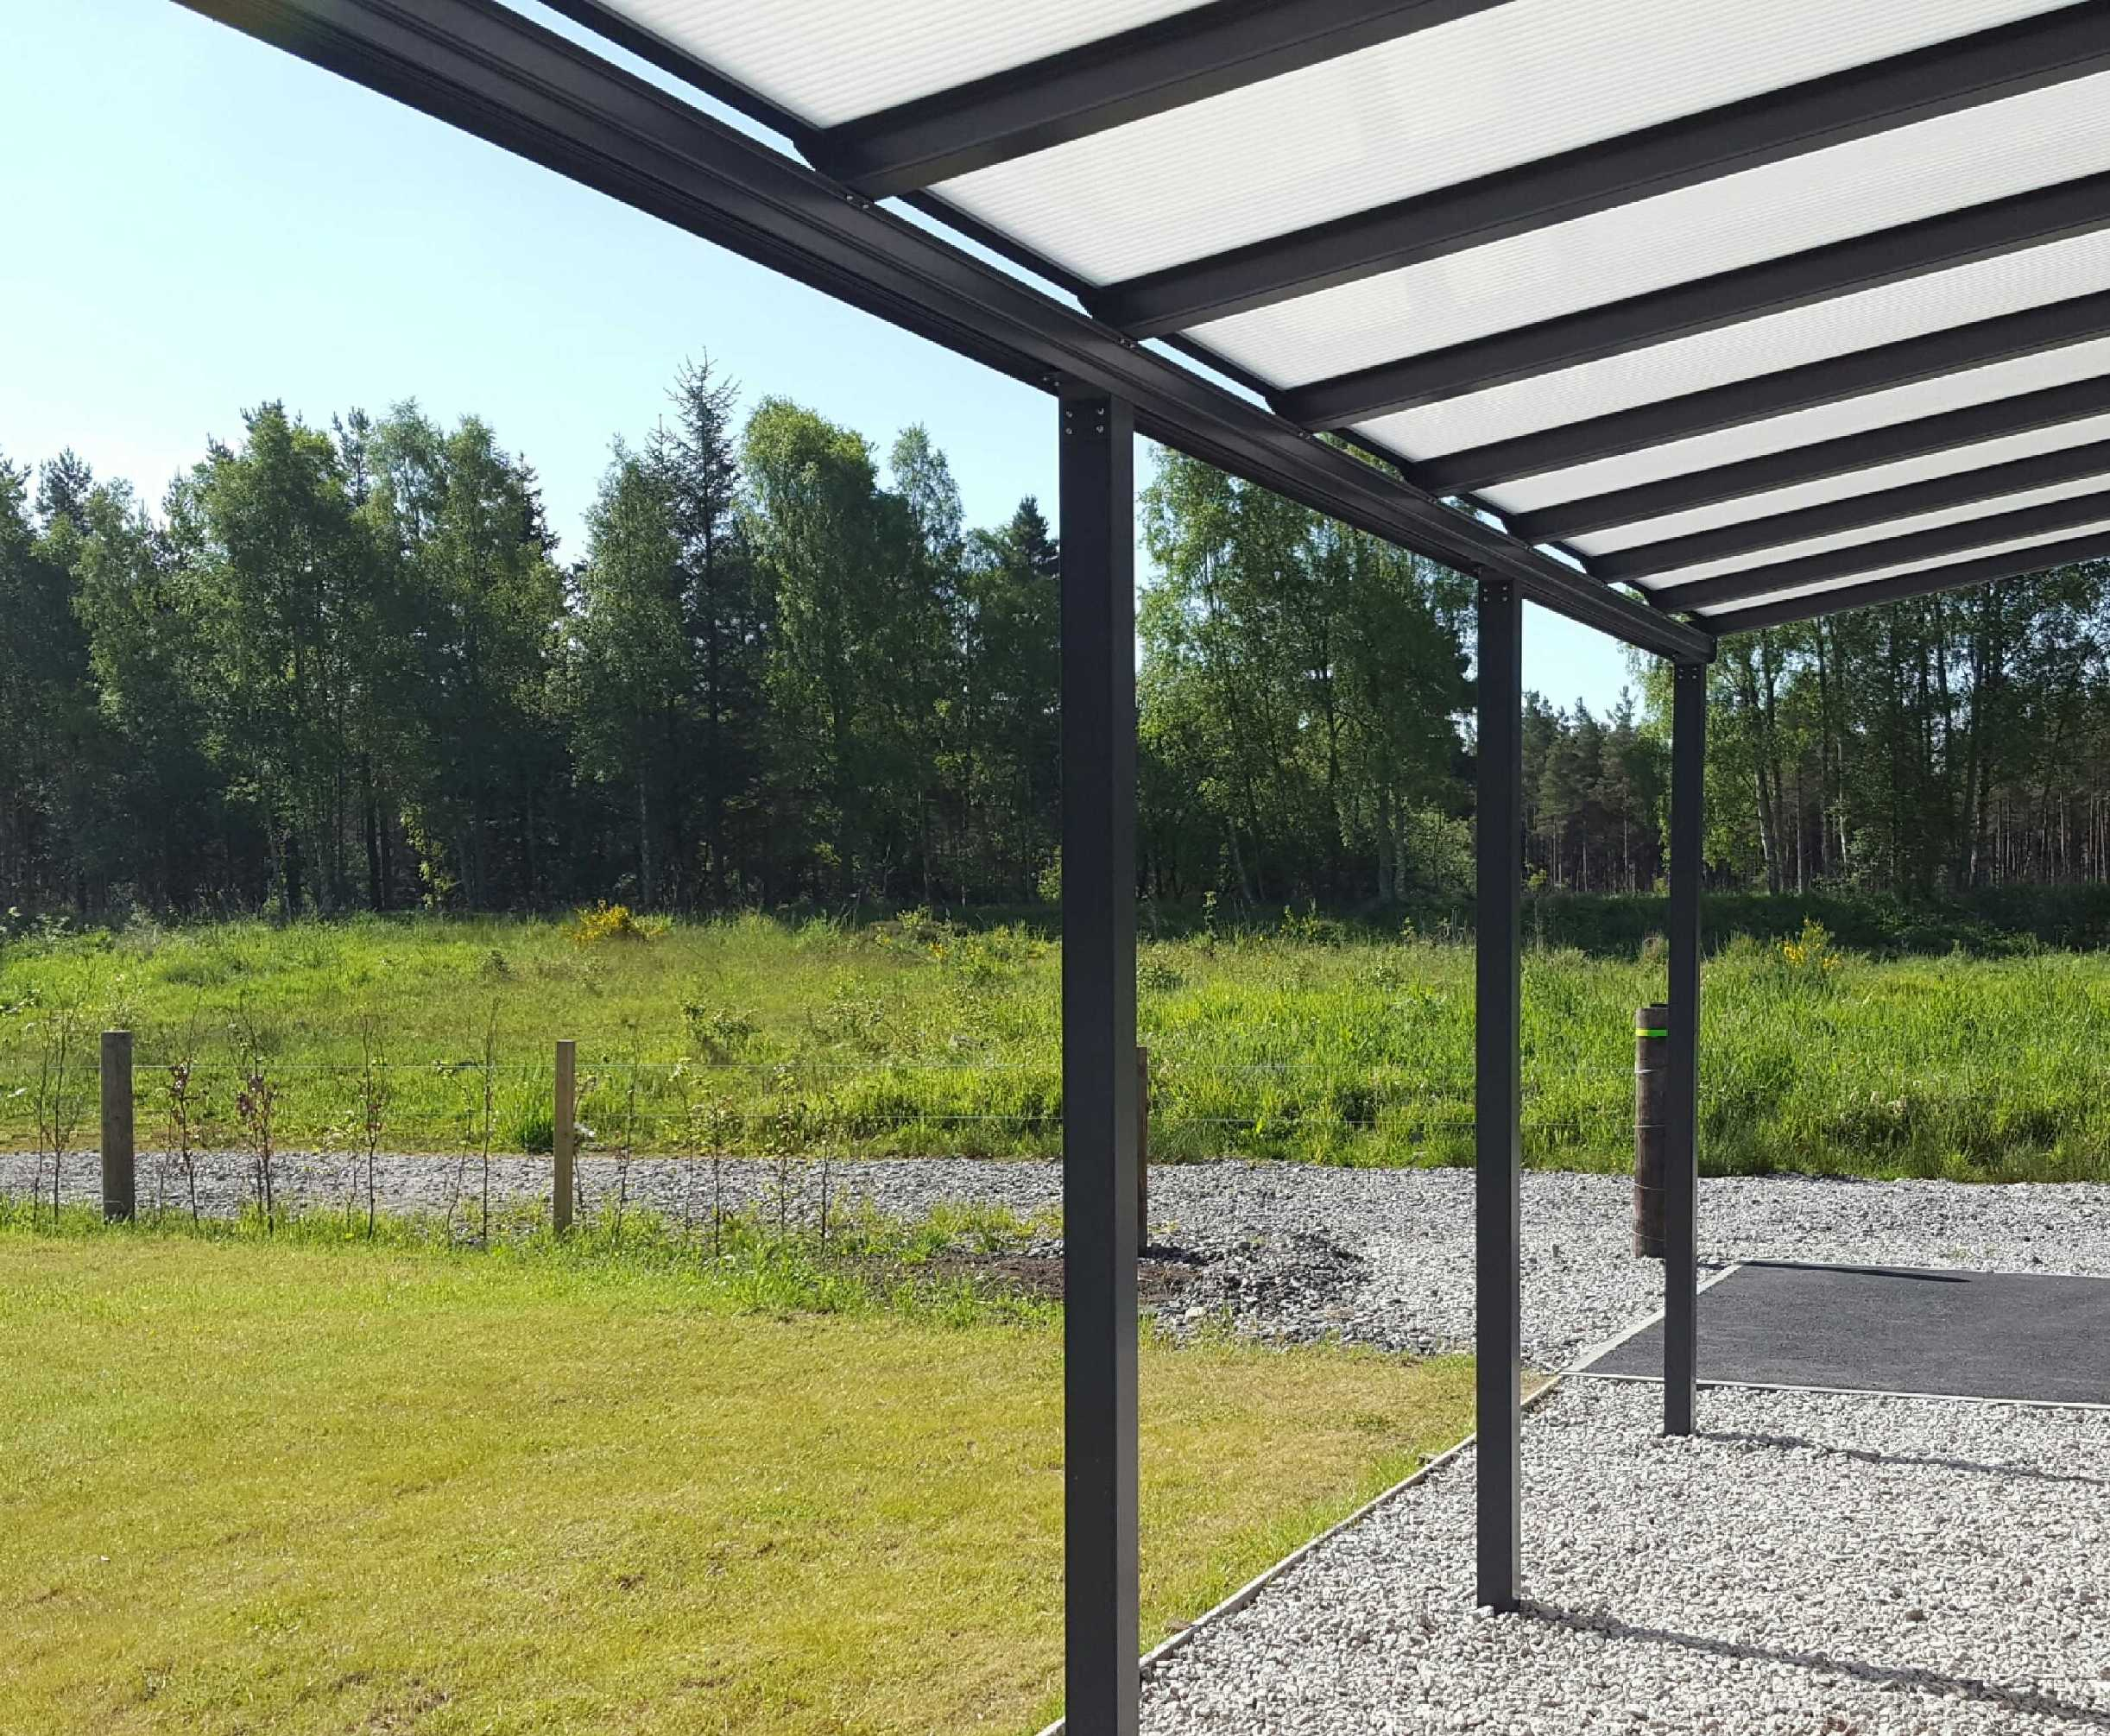 Omega Smart Lean-To Canopy, Anthracite Grey, UNGLAZED for 6mm Glazing - 8.4m (W) x 2.5m (P), (4) Supporting Posts